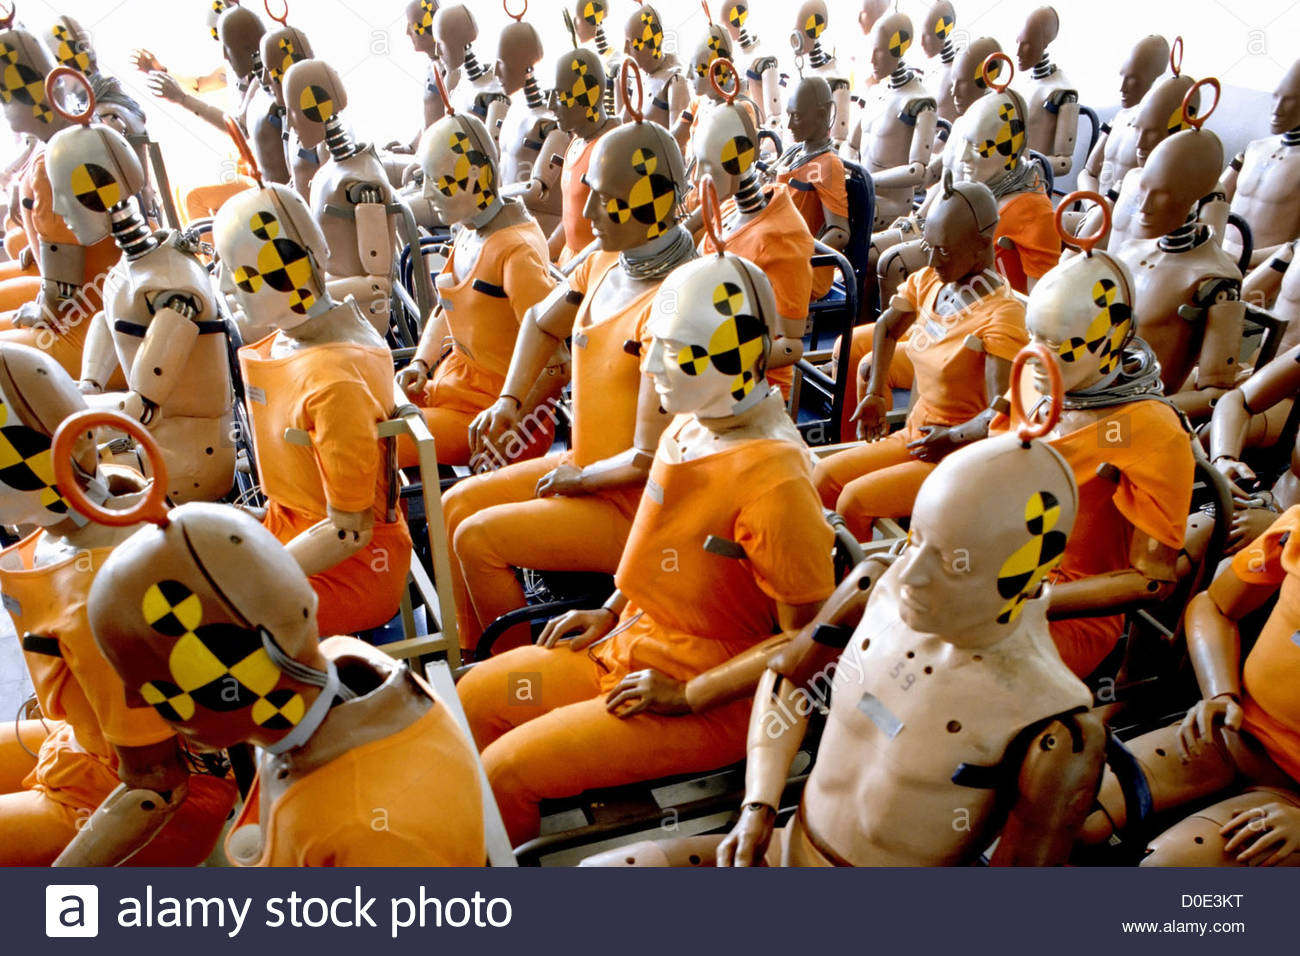 Crash Test Dummies Stock Photos Crash Test Dummies Stock Images